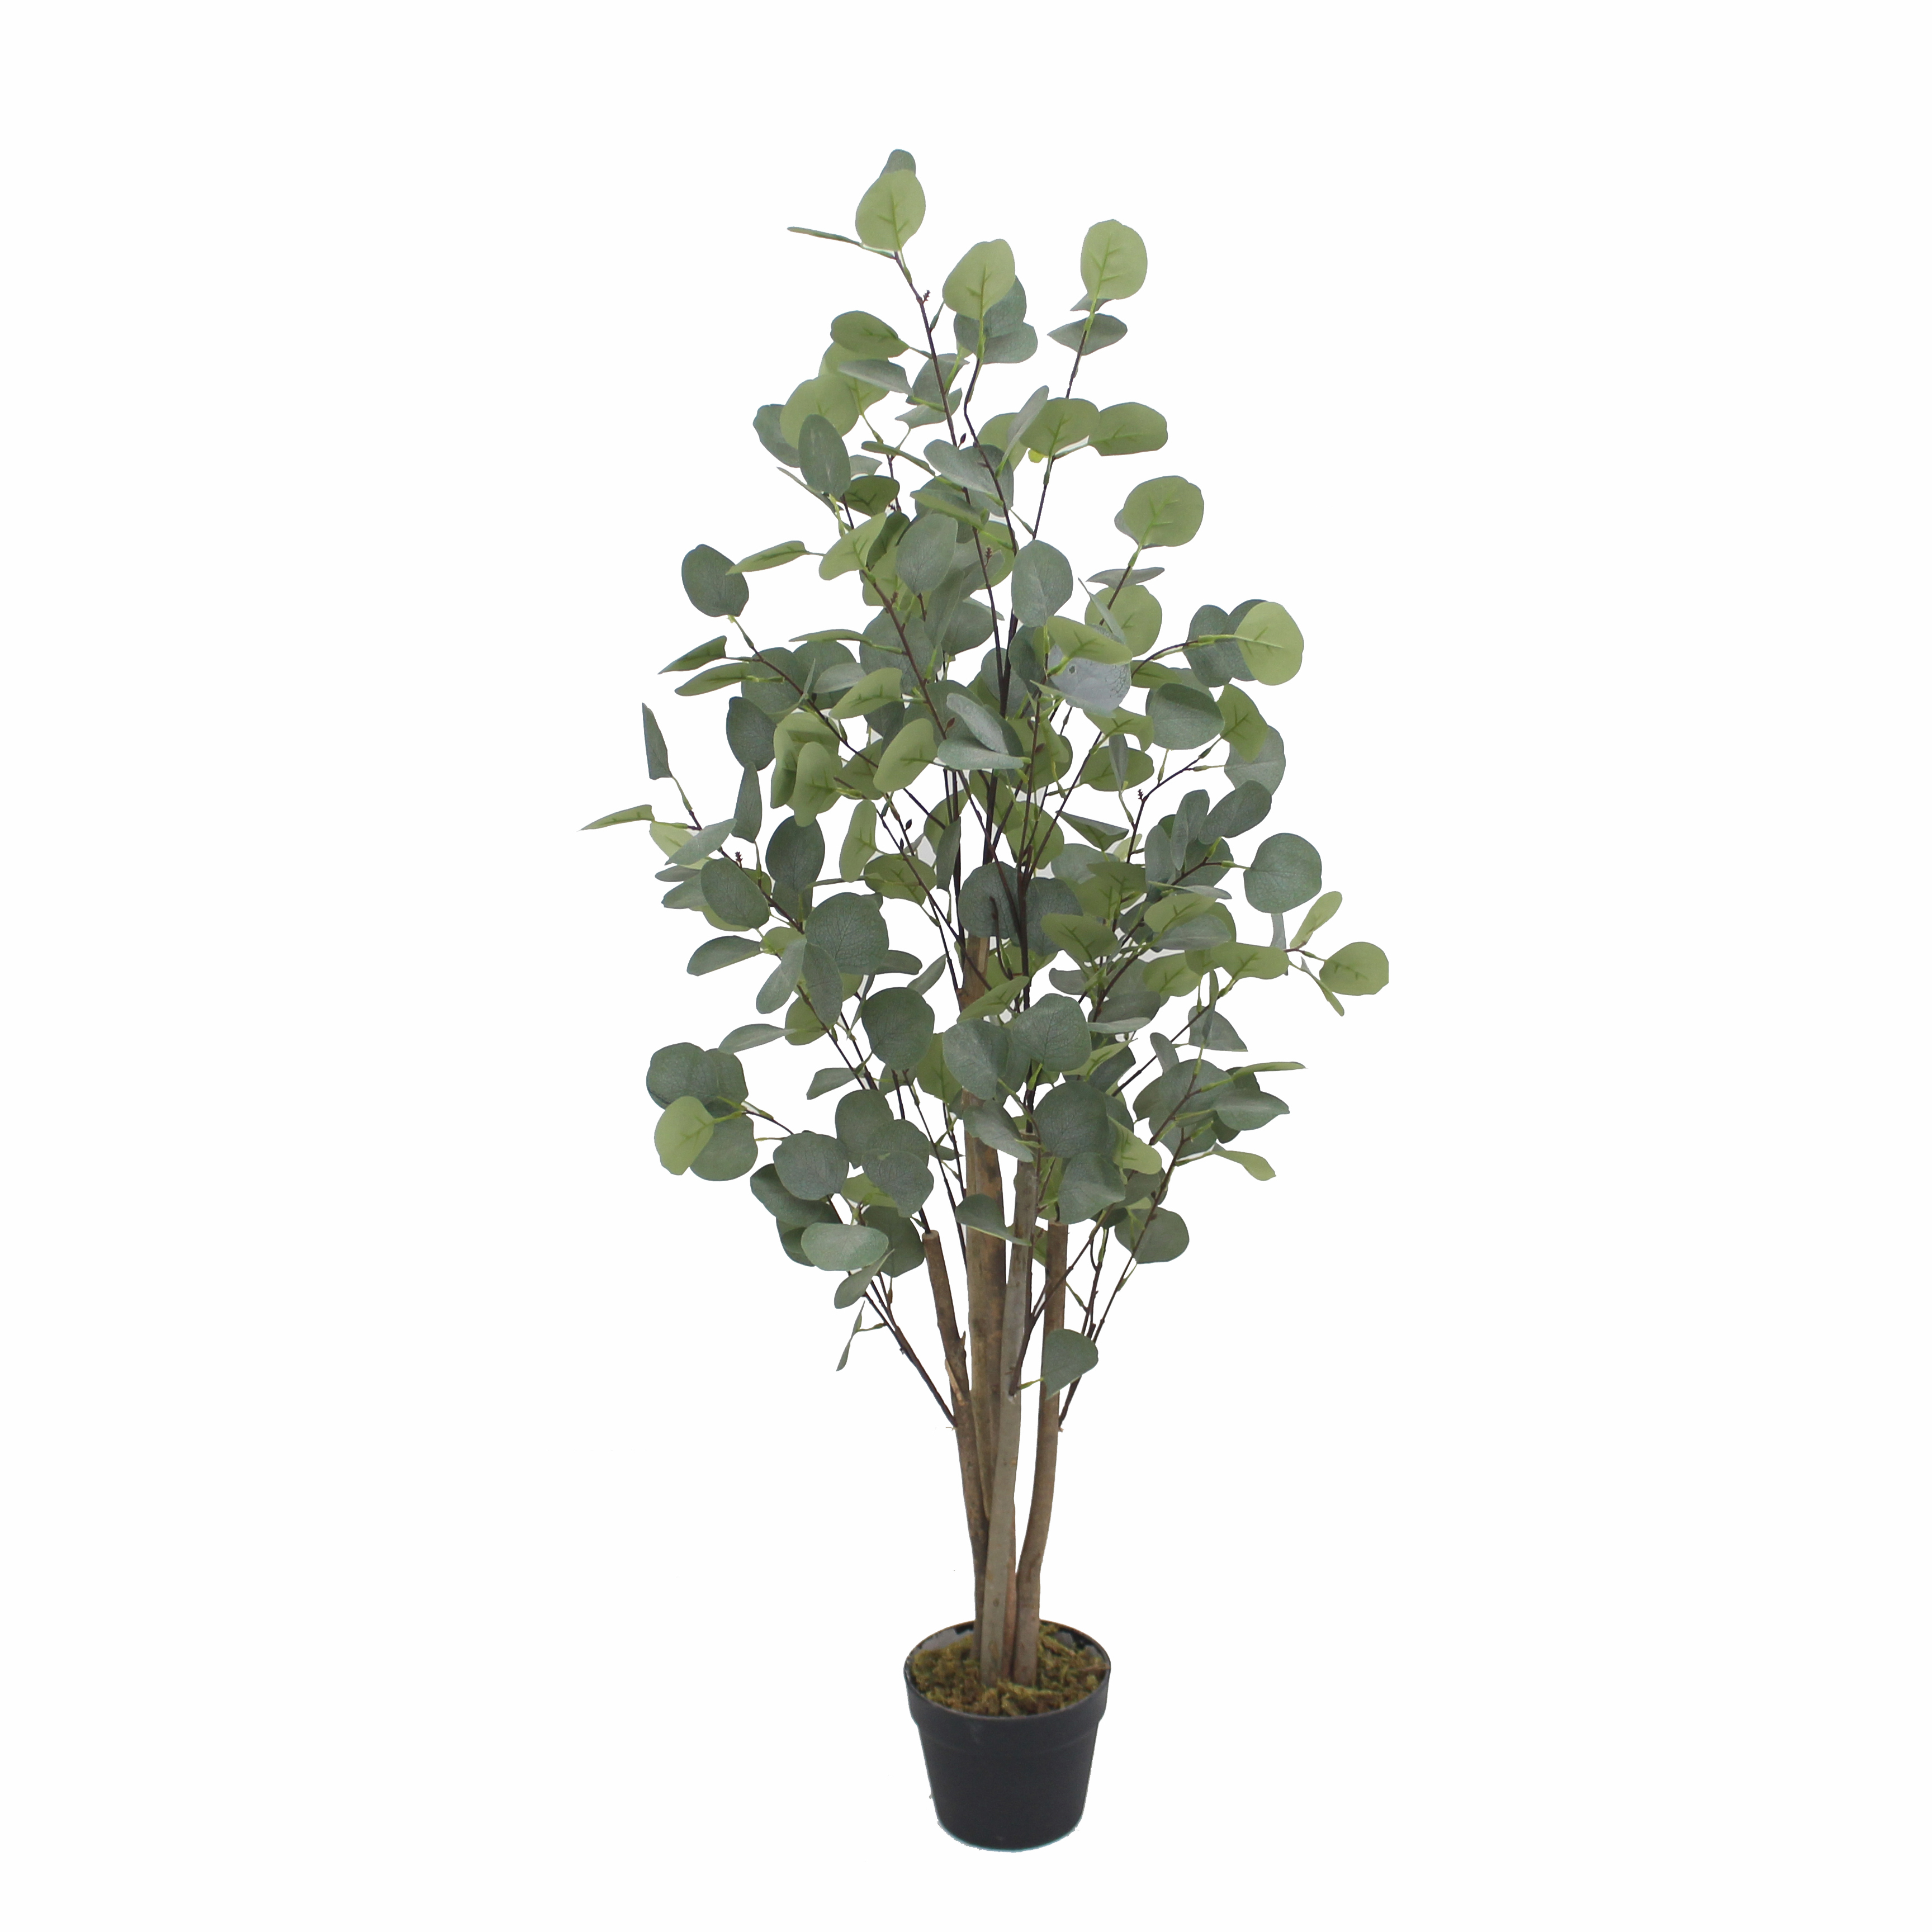 Amazon hot sale artificial <strong>trees</strong> and plants bonsai plants for <strong>house</strong> decoration